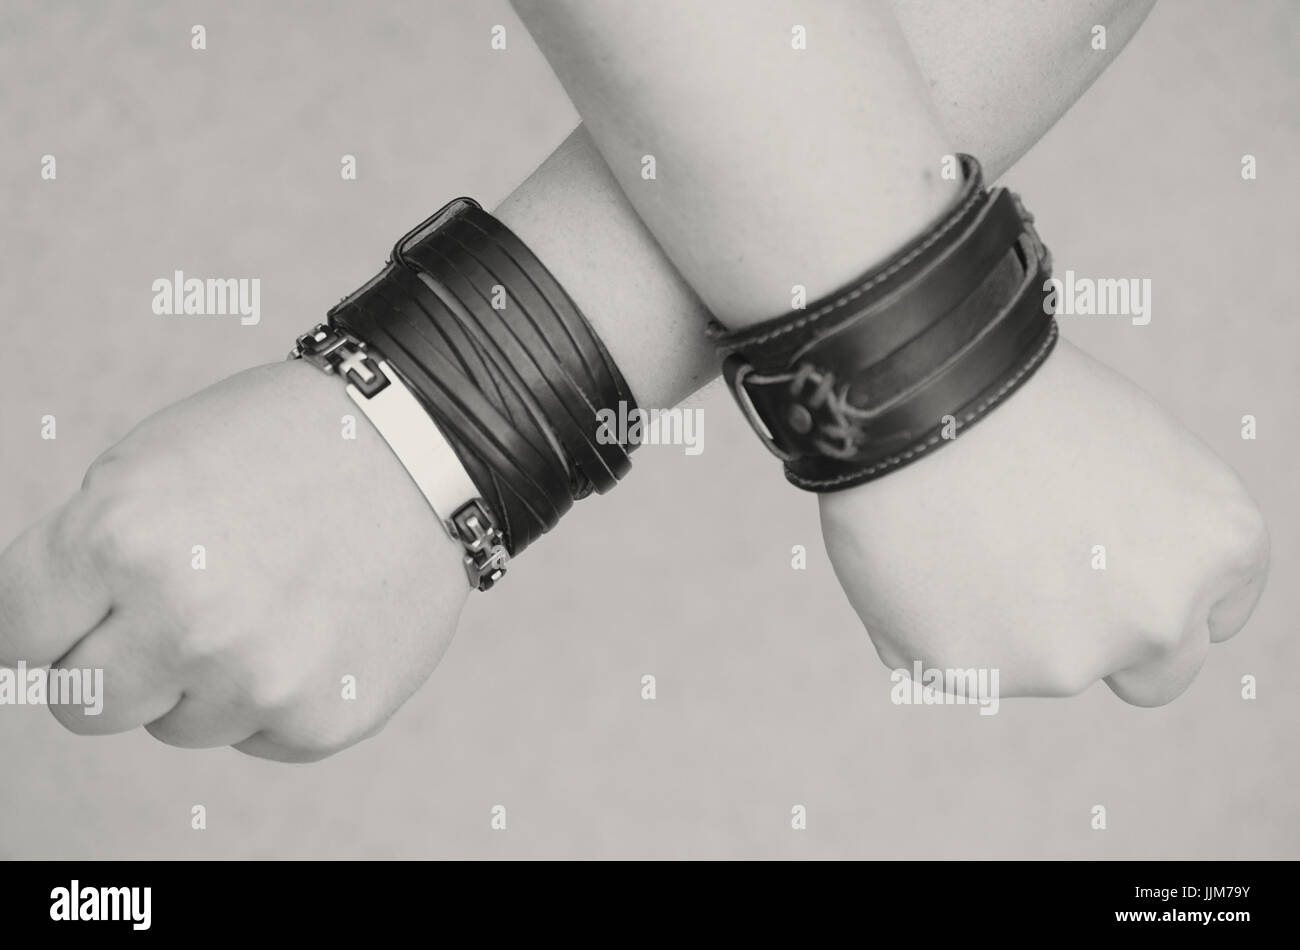 Modern fashionable leather and metal bracelets on the wrist Stock Photo